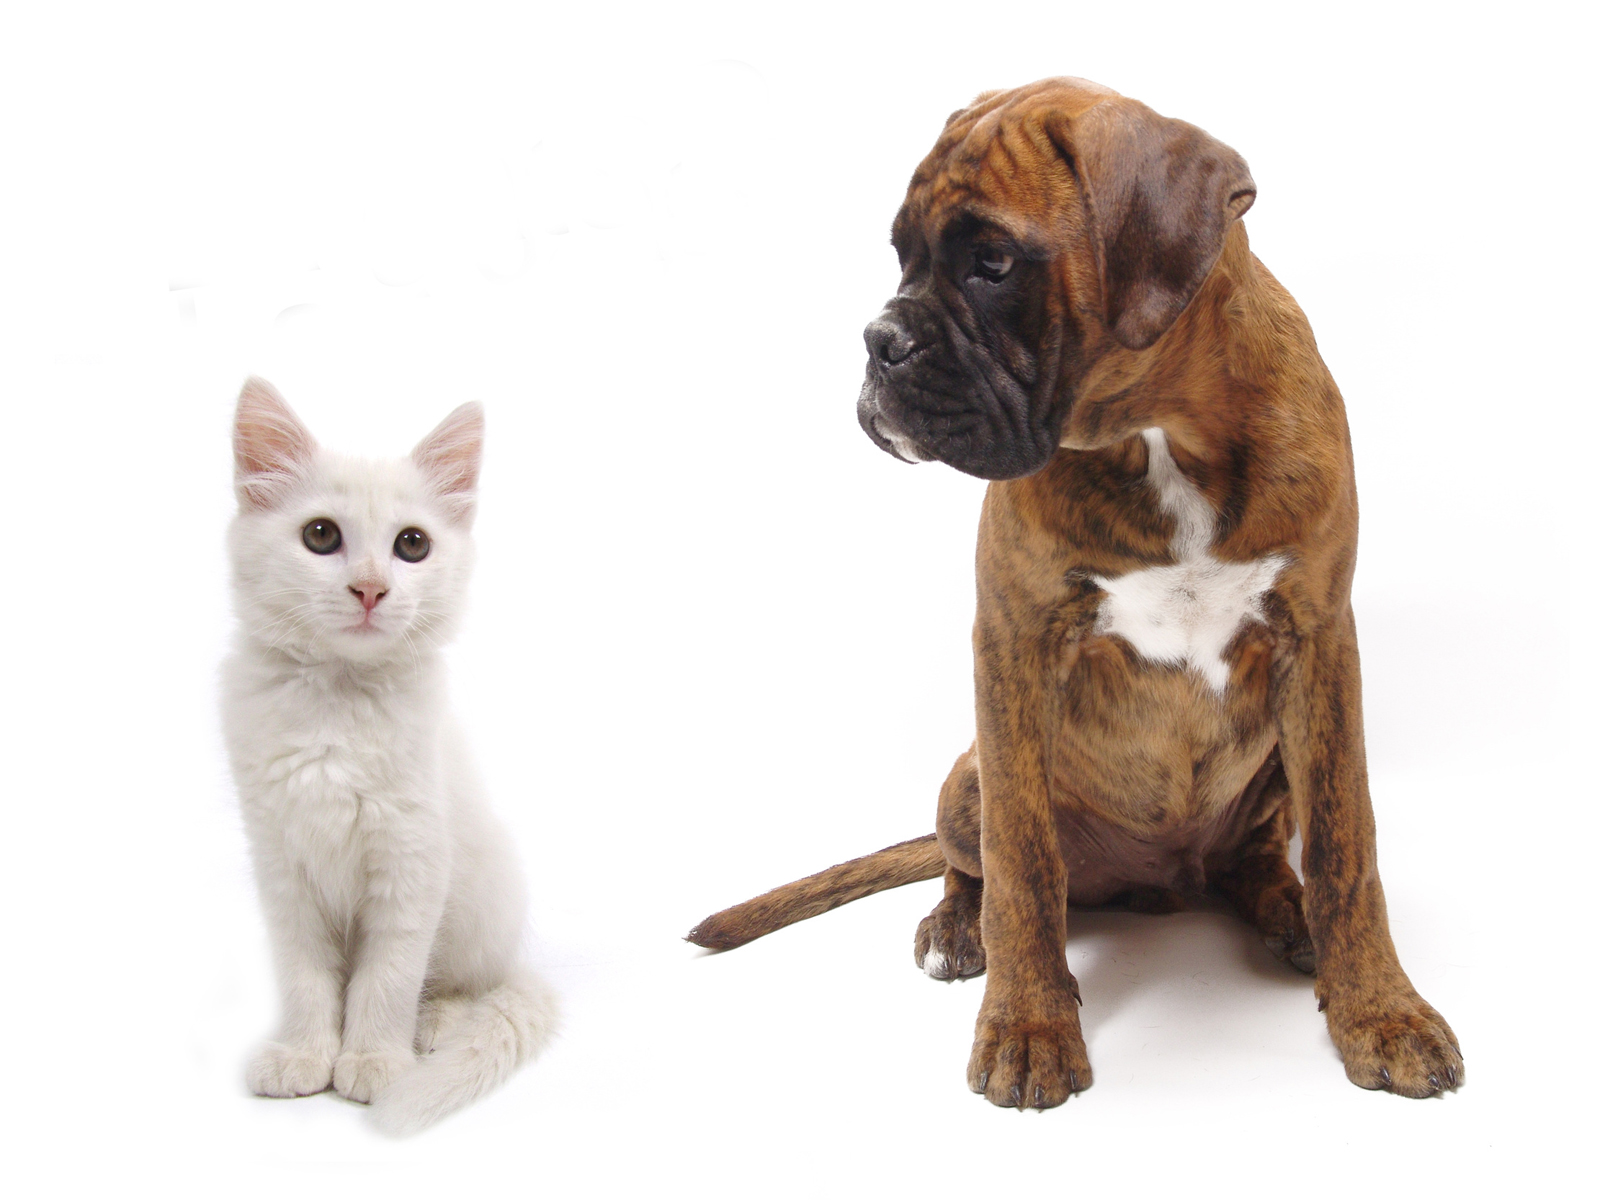 Cat and dog together on a white background - Khoirulpage